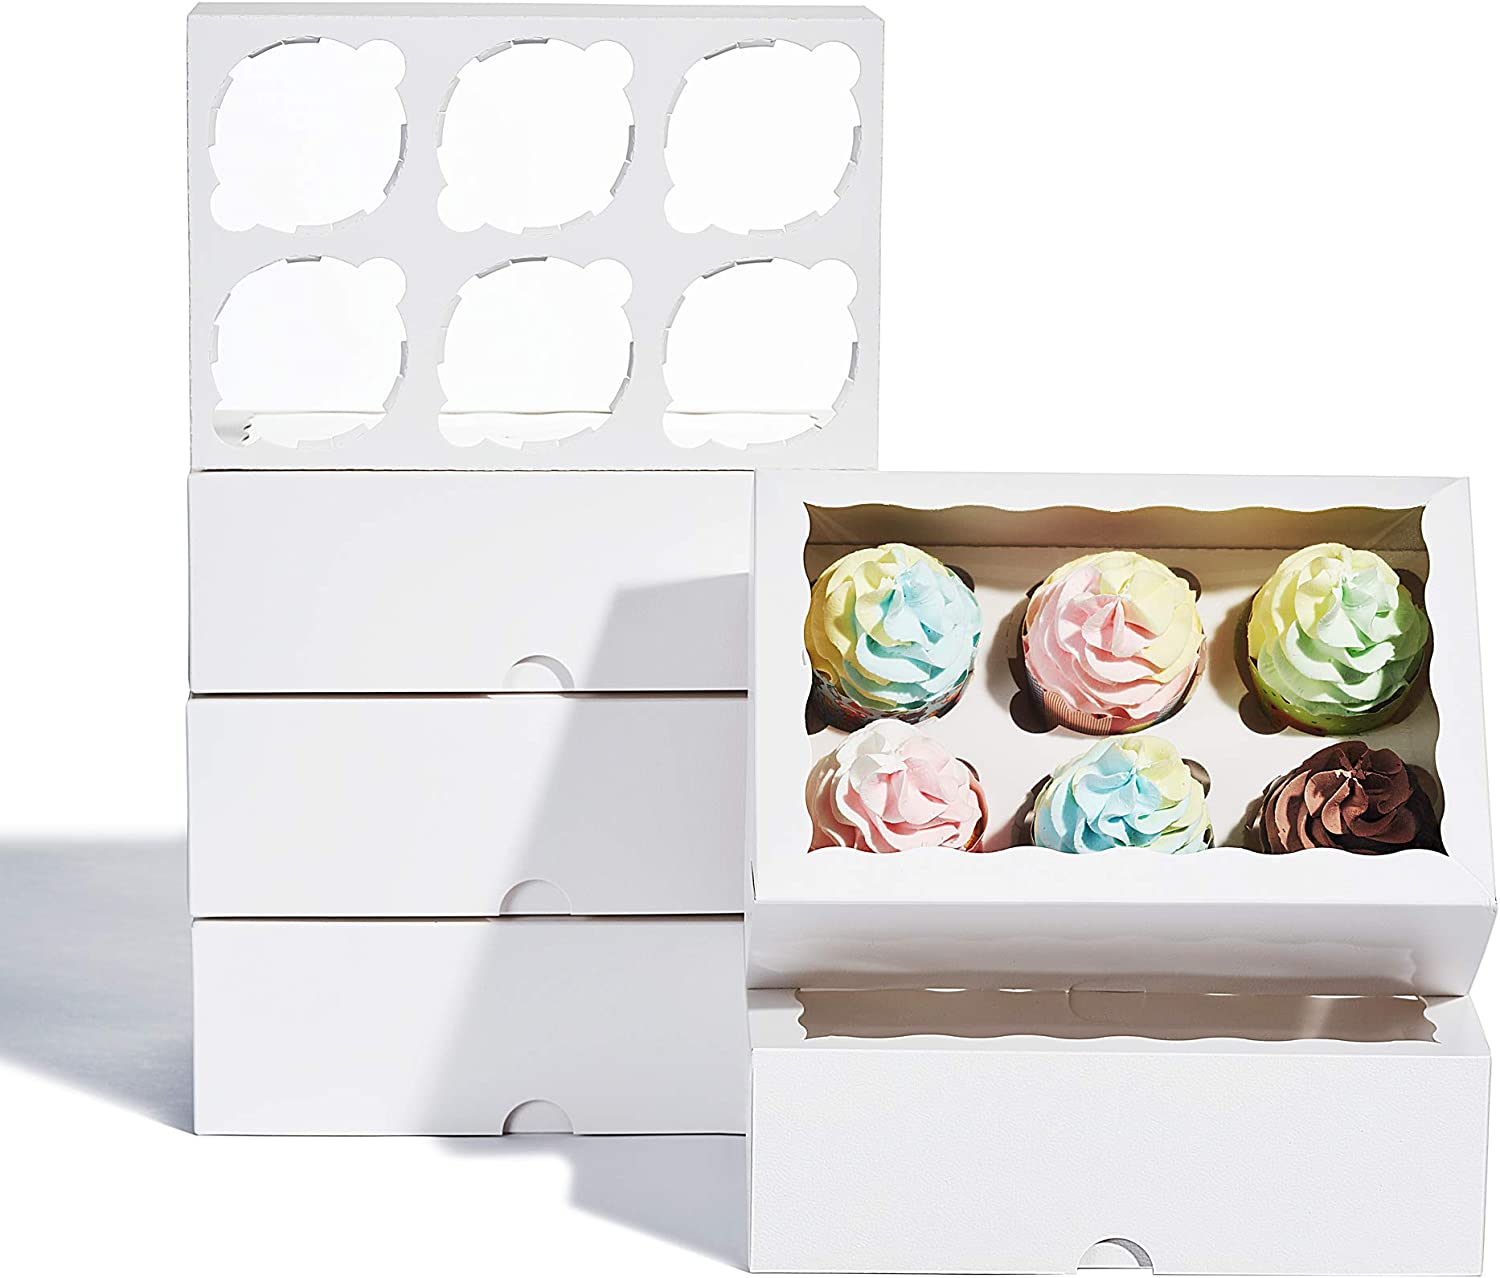 24 Pack Premium White Cupcake Boxes with Inserts and Window,9 x 6 x 3 Inch Food Grade Bakery Boxes,Cupcake boxes for 6 Cupcake,cookies or muffins